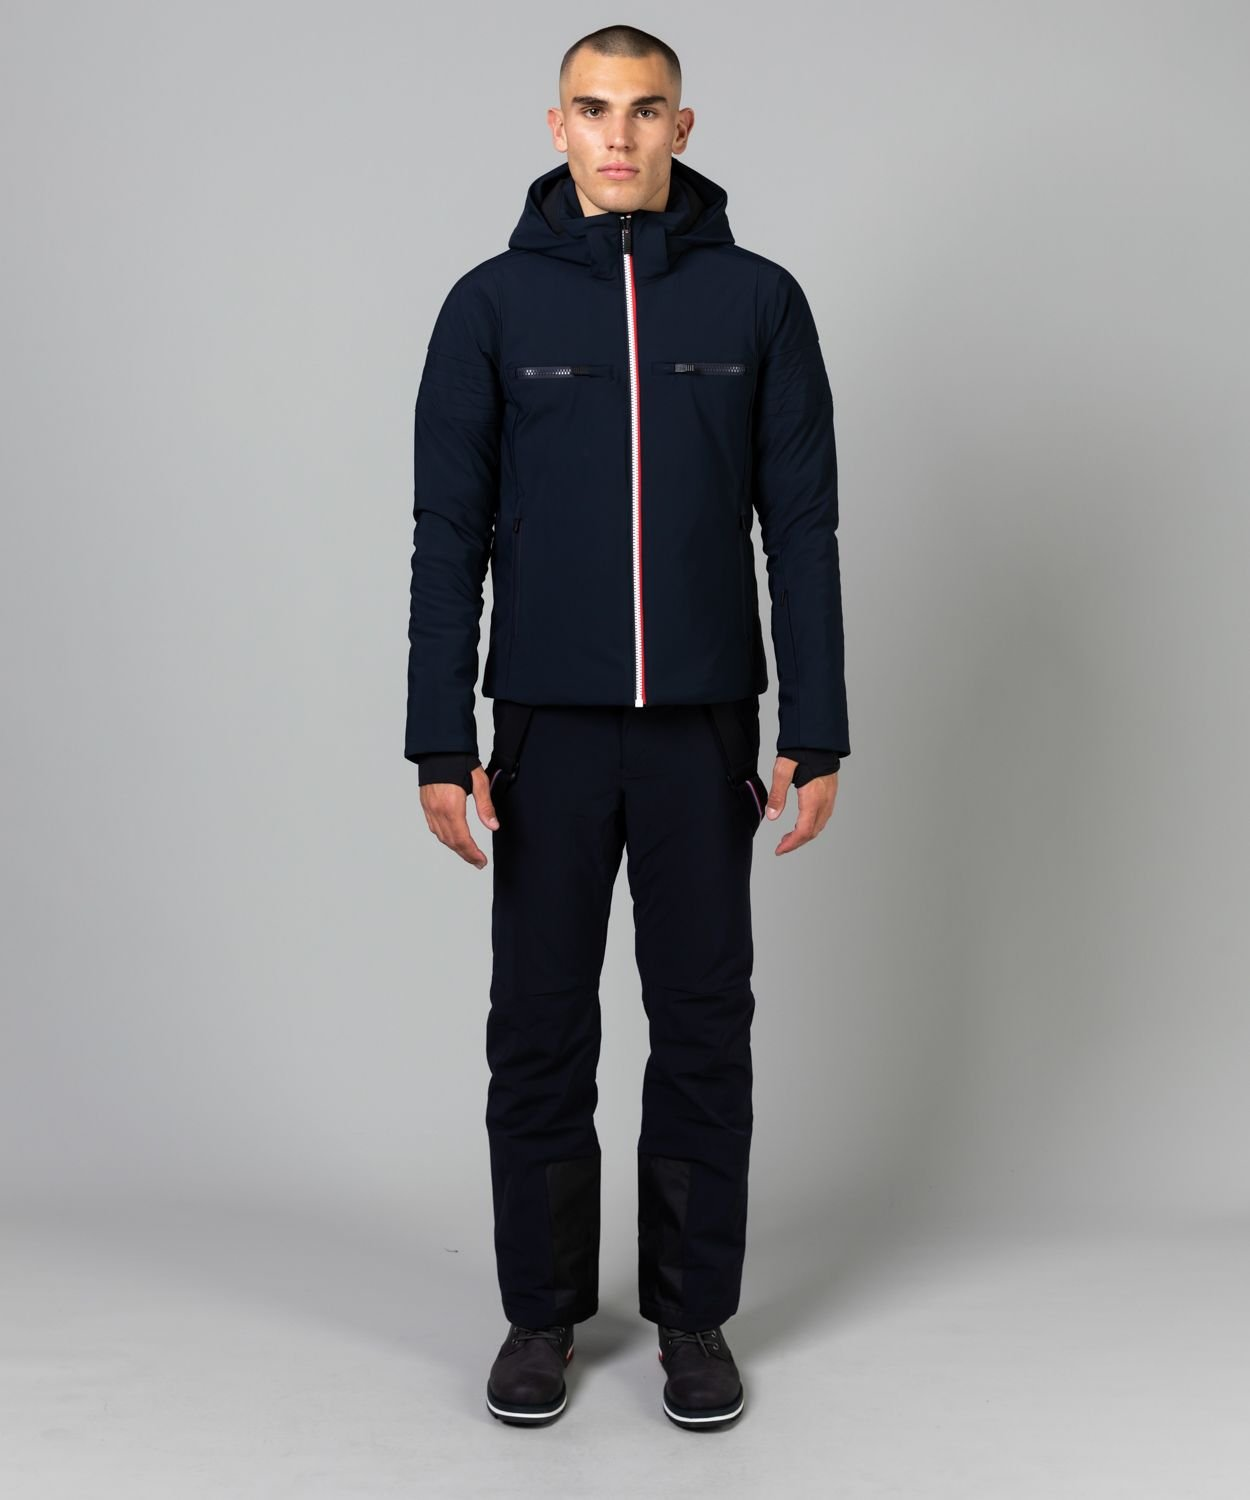 Men's Spectre Ski Jacket